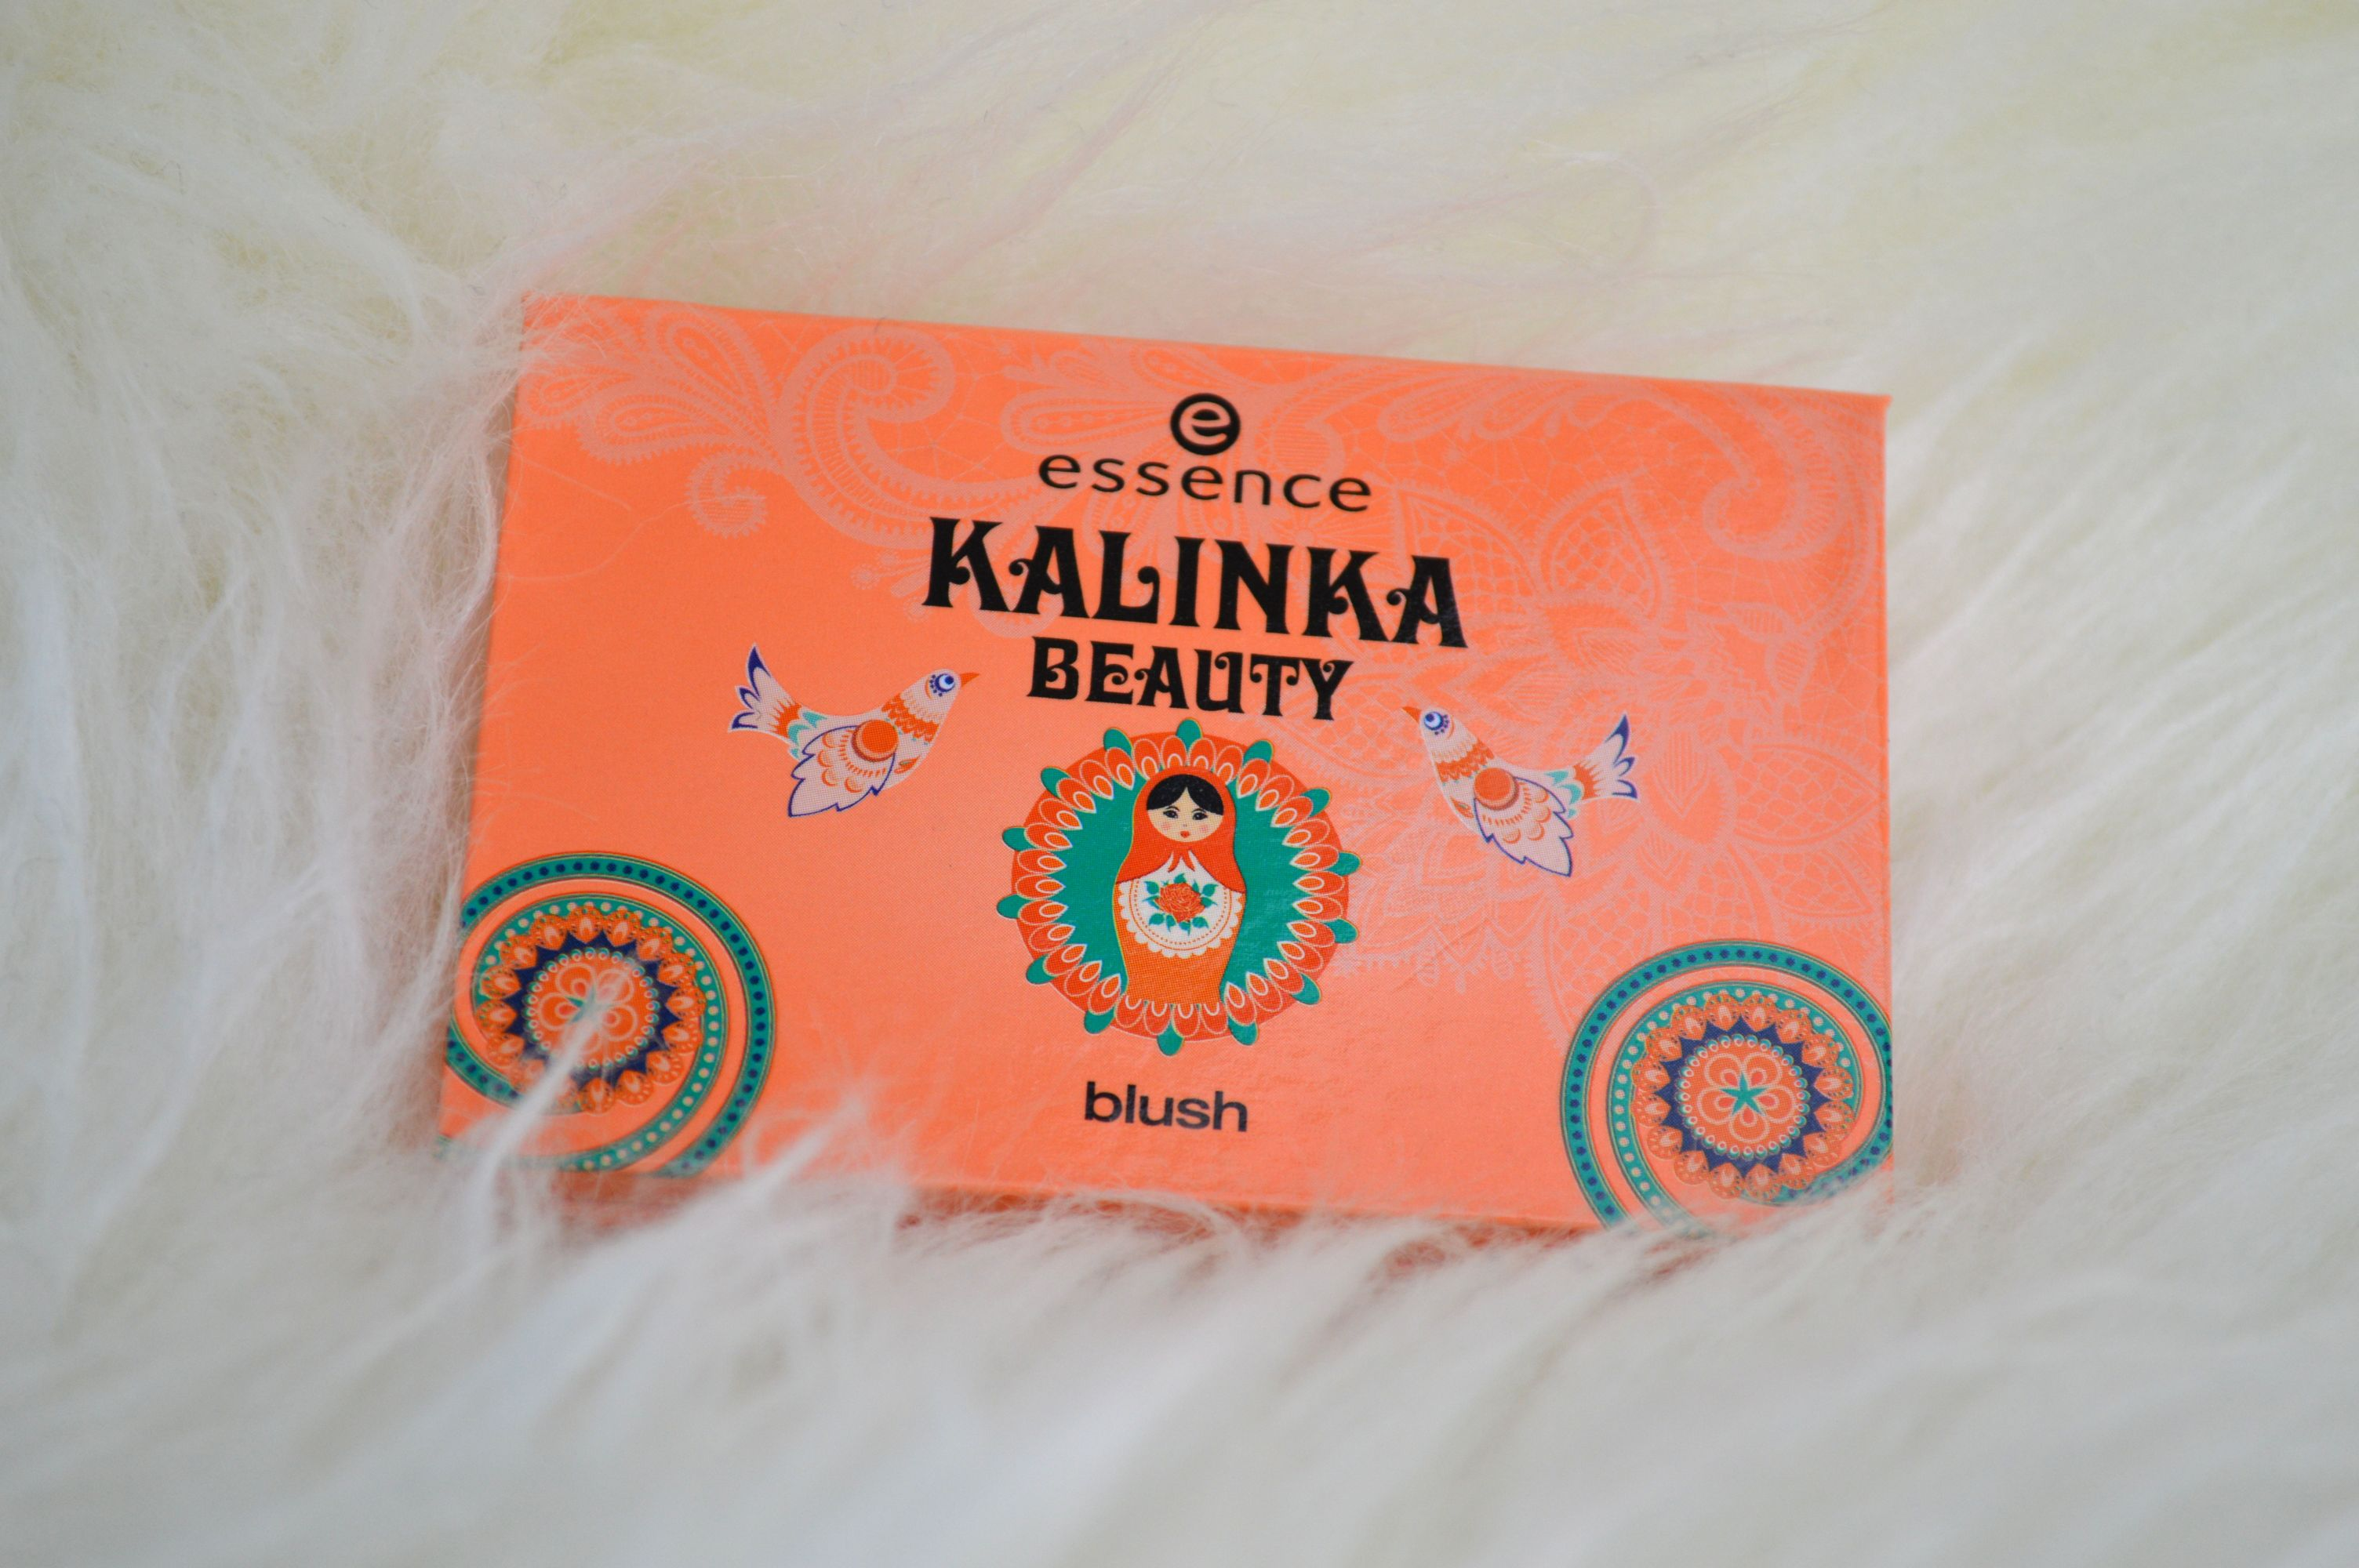 Essence Kalinka Beauty Blush